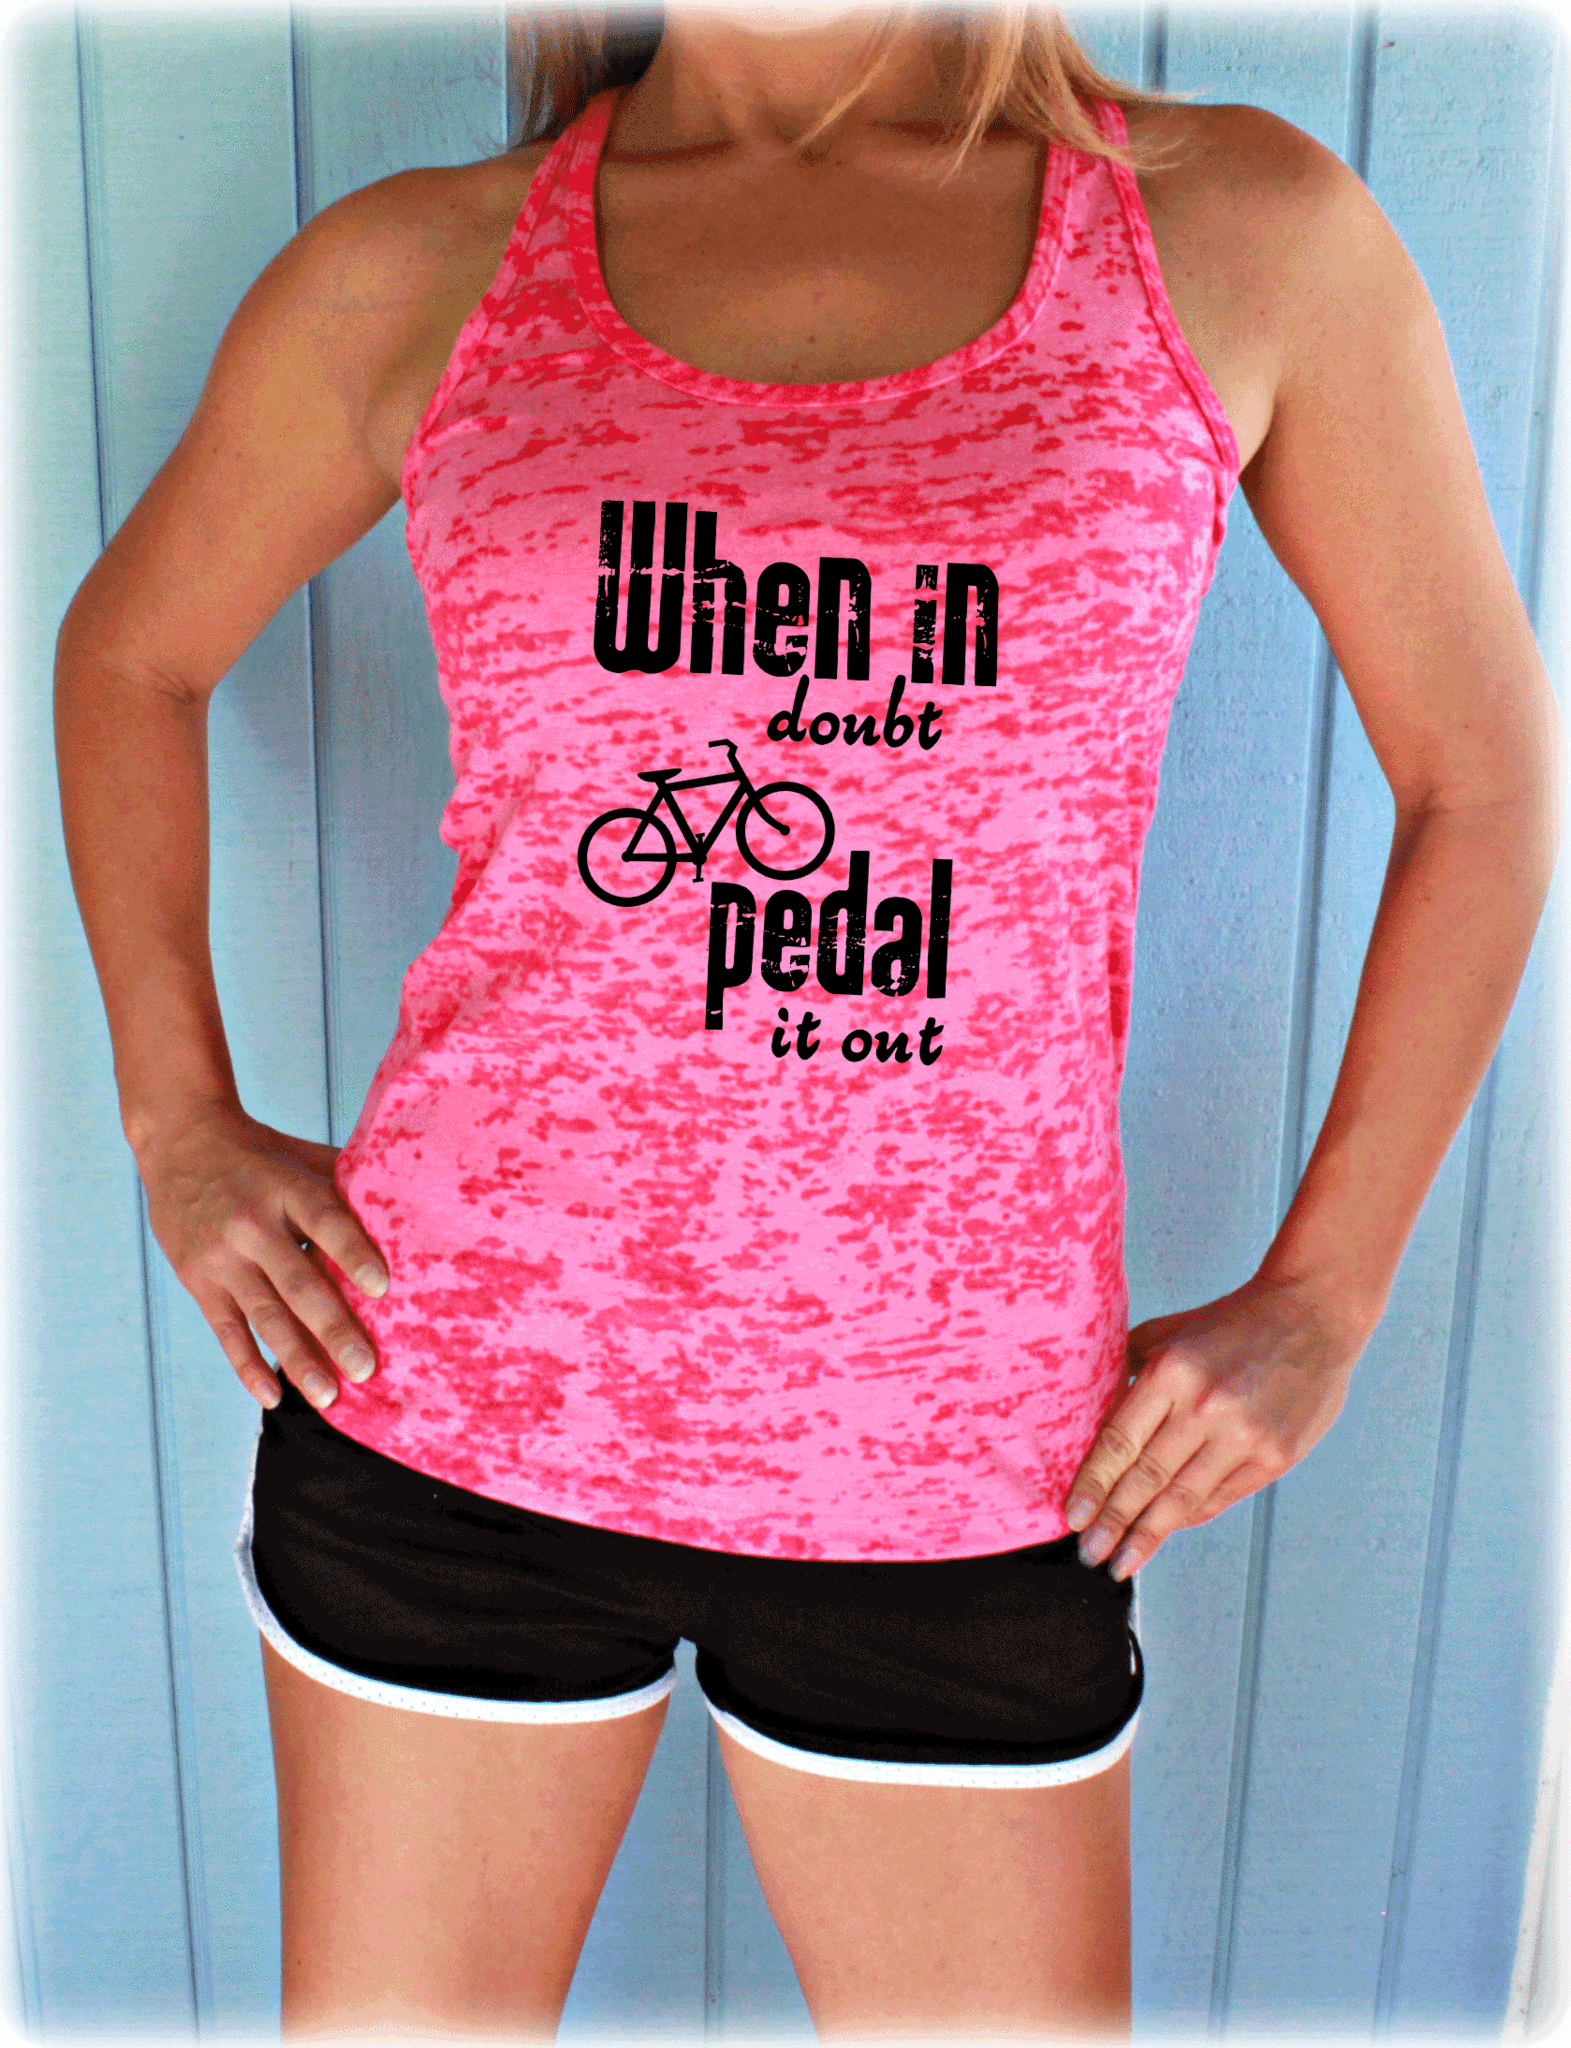 Women s Active Apparel for Fitness Motivation. Great Gift for the Indoor  Cycling Class or Biking Junkie! Gain a little spin class or road bike  inspiration ... 5d125ee83